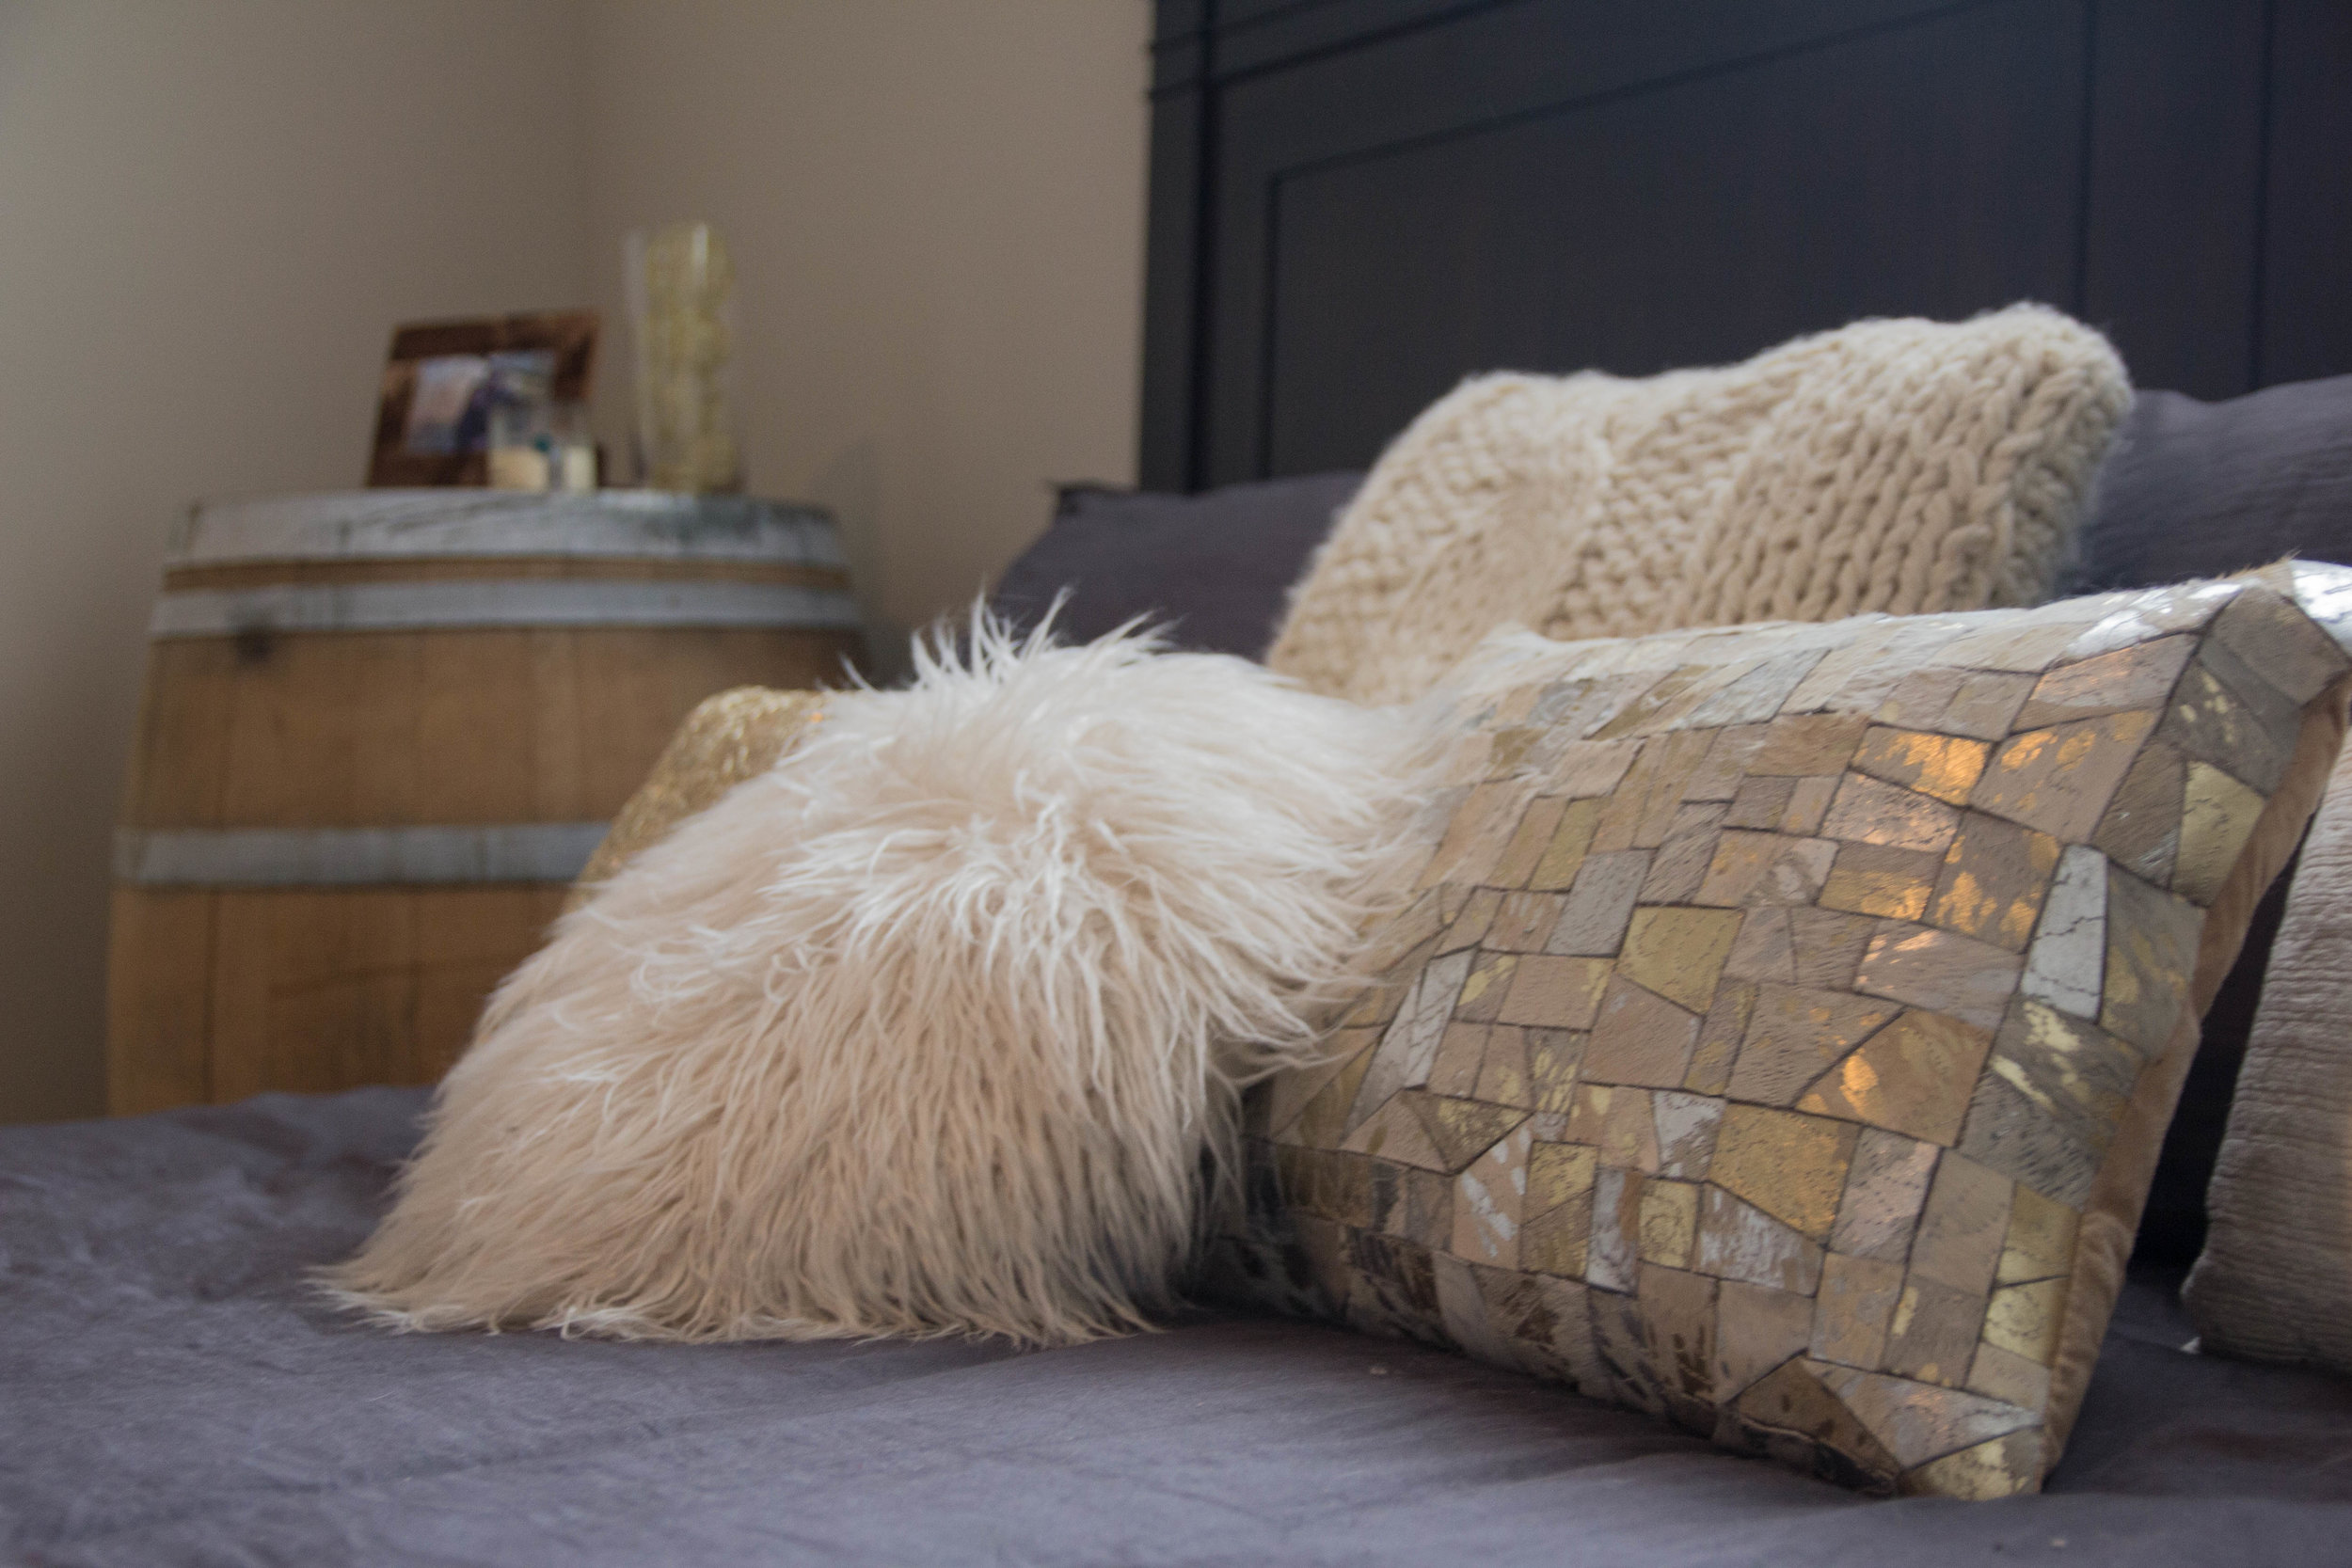 Sharing an Apartment: How to Combine Décor Styles, wine barrel decor, rewined candles, grey, cream, gold, metallic faux fur rug, mongolian faux fur rug, parachute bedding, tuft and needle foam mattress,  dallas sky lofts, apartment locater service